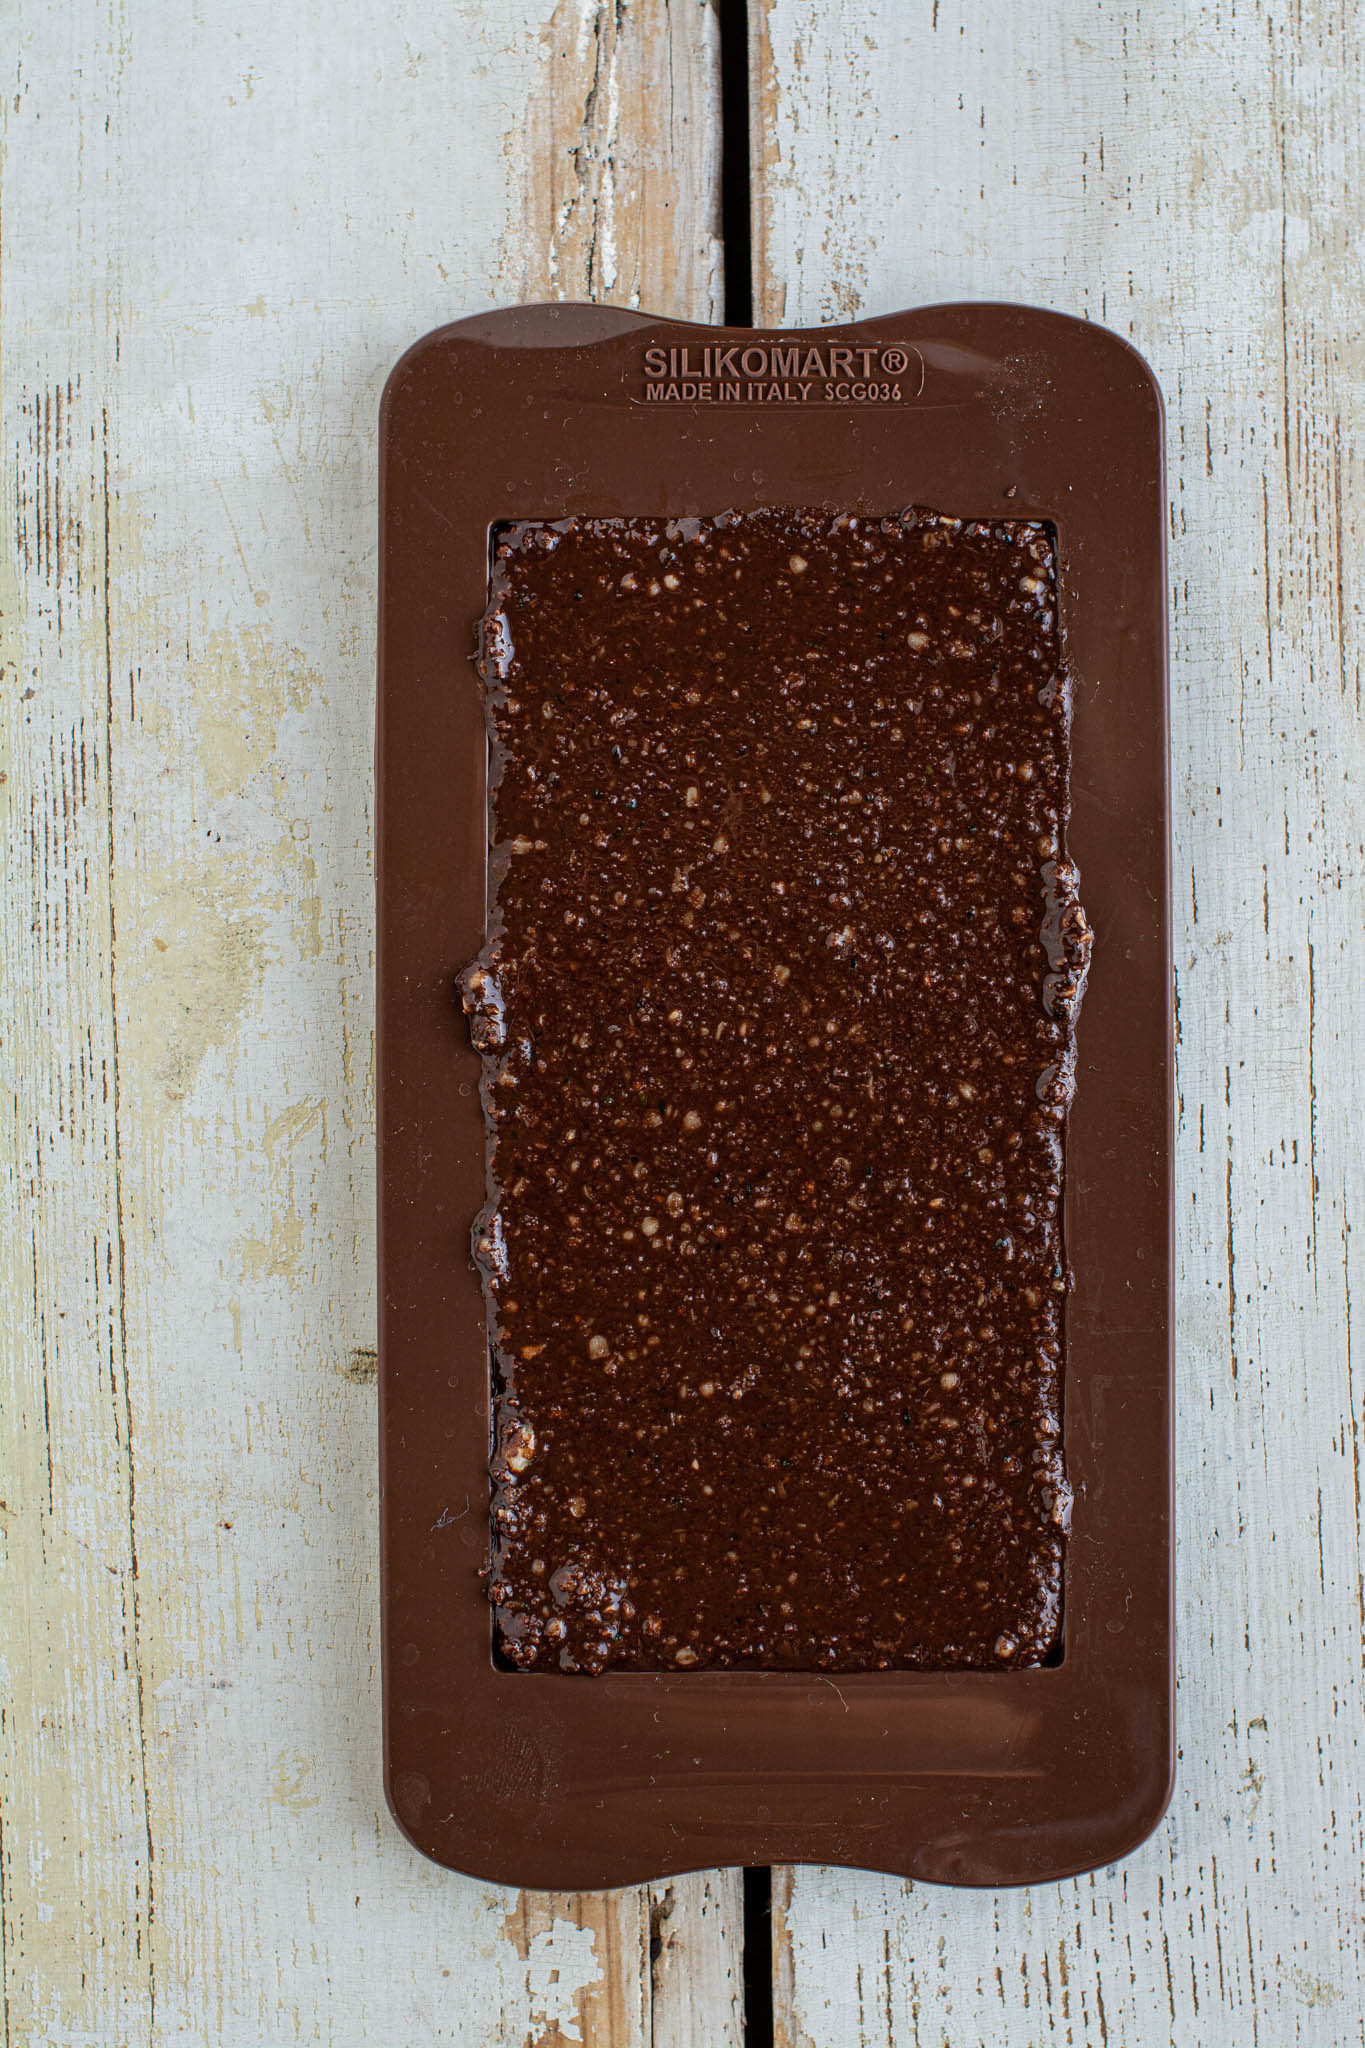 Learn how to make espresso flavoured vegan chocolate bars that resemble Nucao's espresso chocolate bar but come with a third of the price. You'll need only 6 ingredients and 15 minutes of your time.